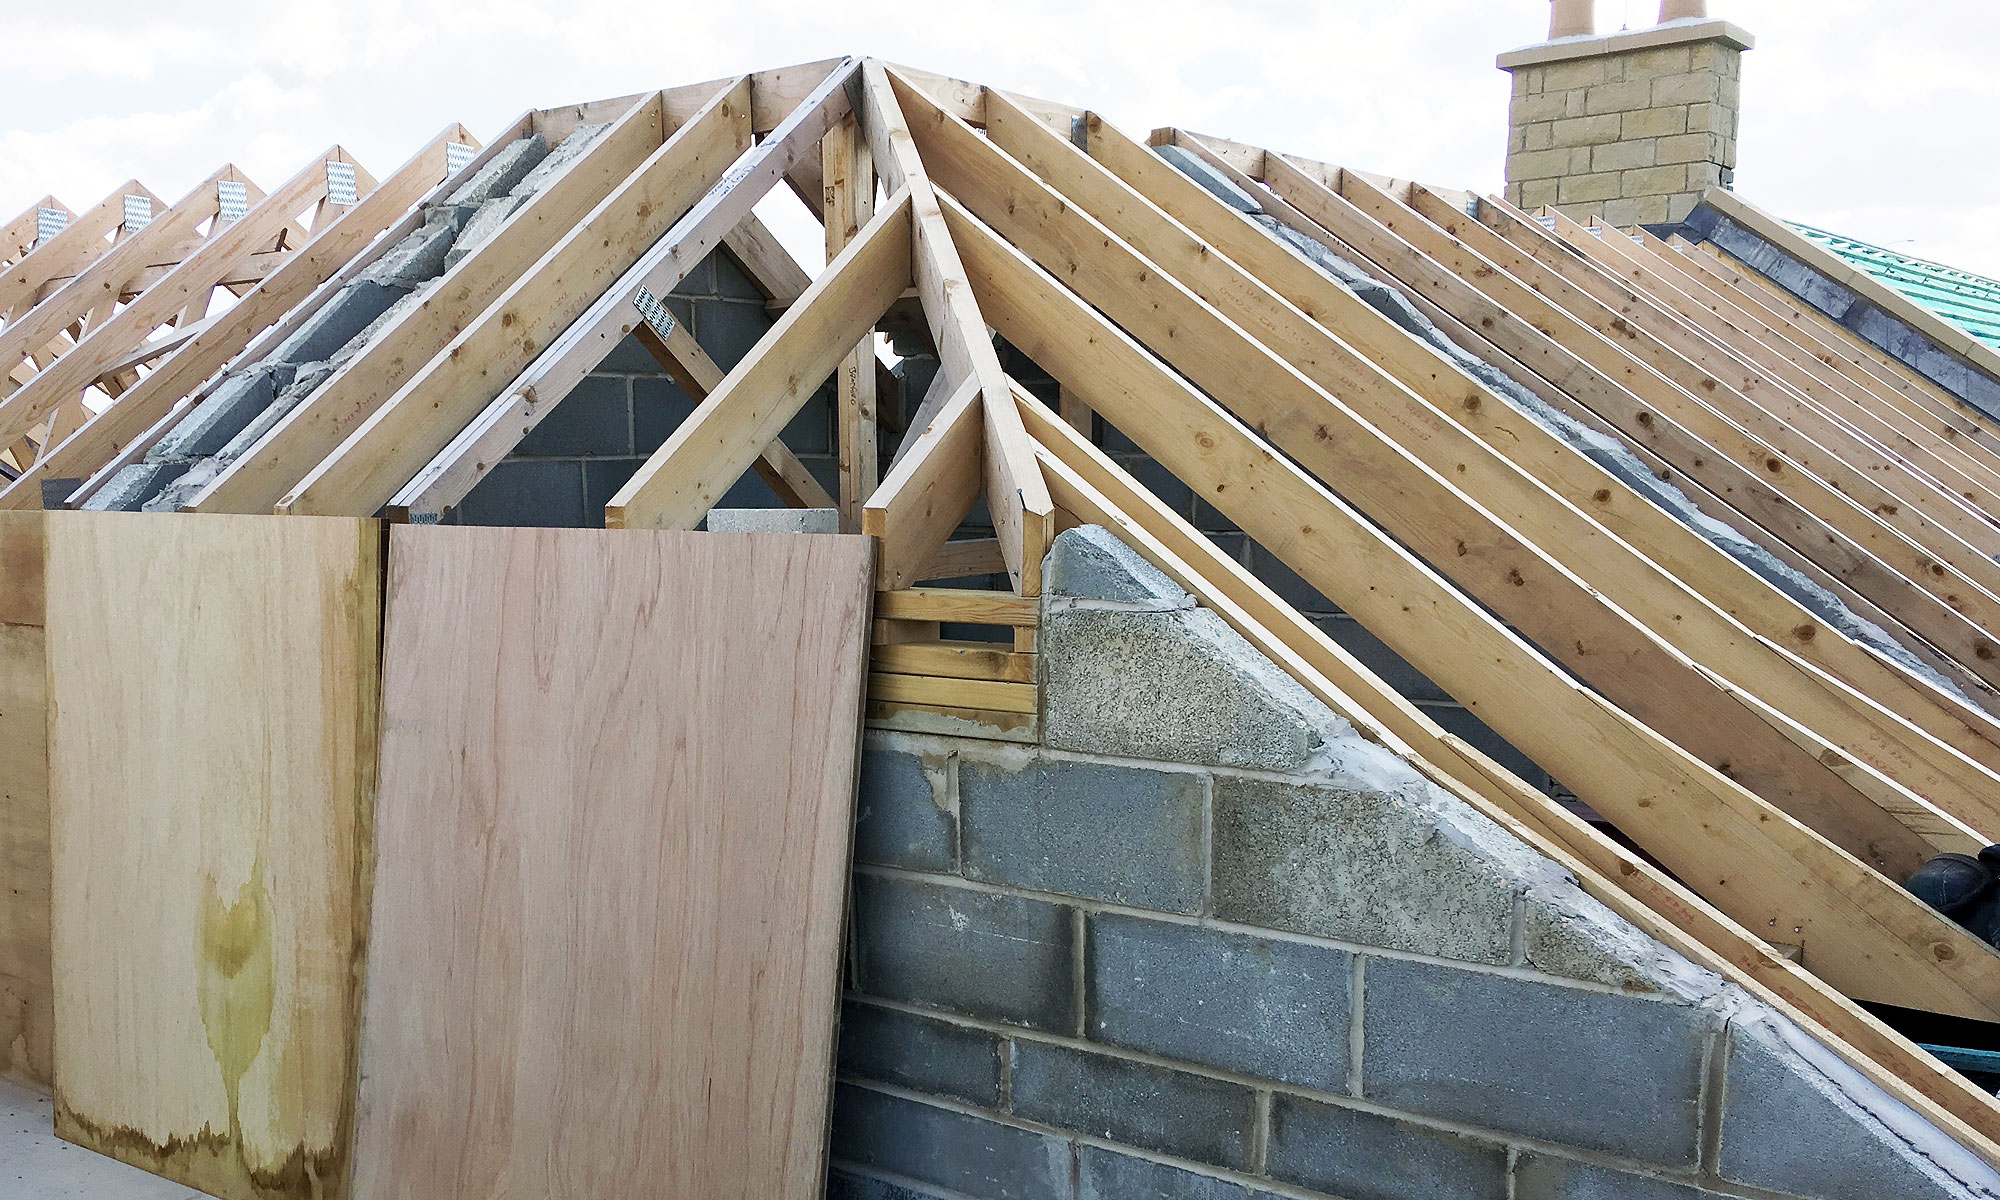 traditional-roof-hip-joinery